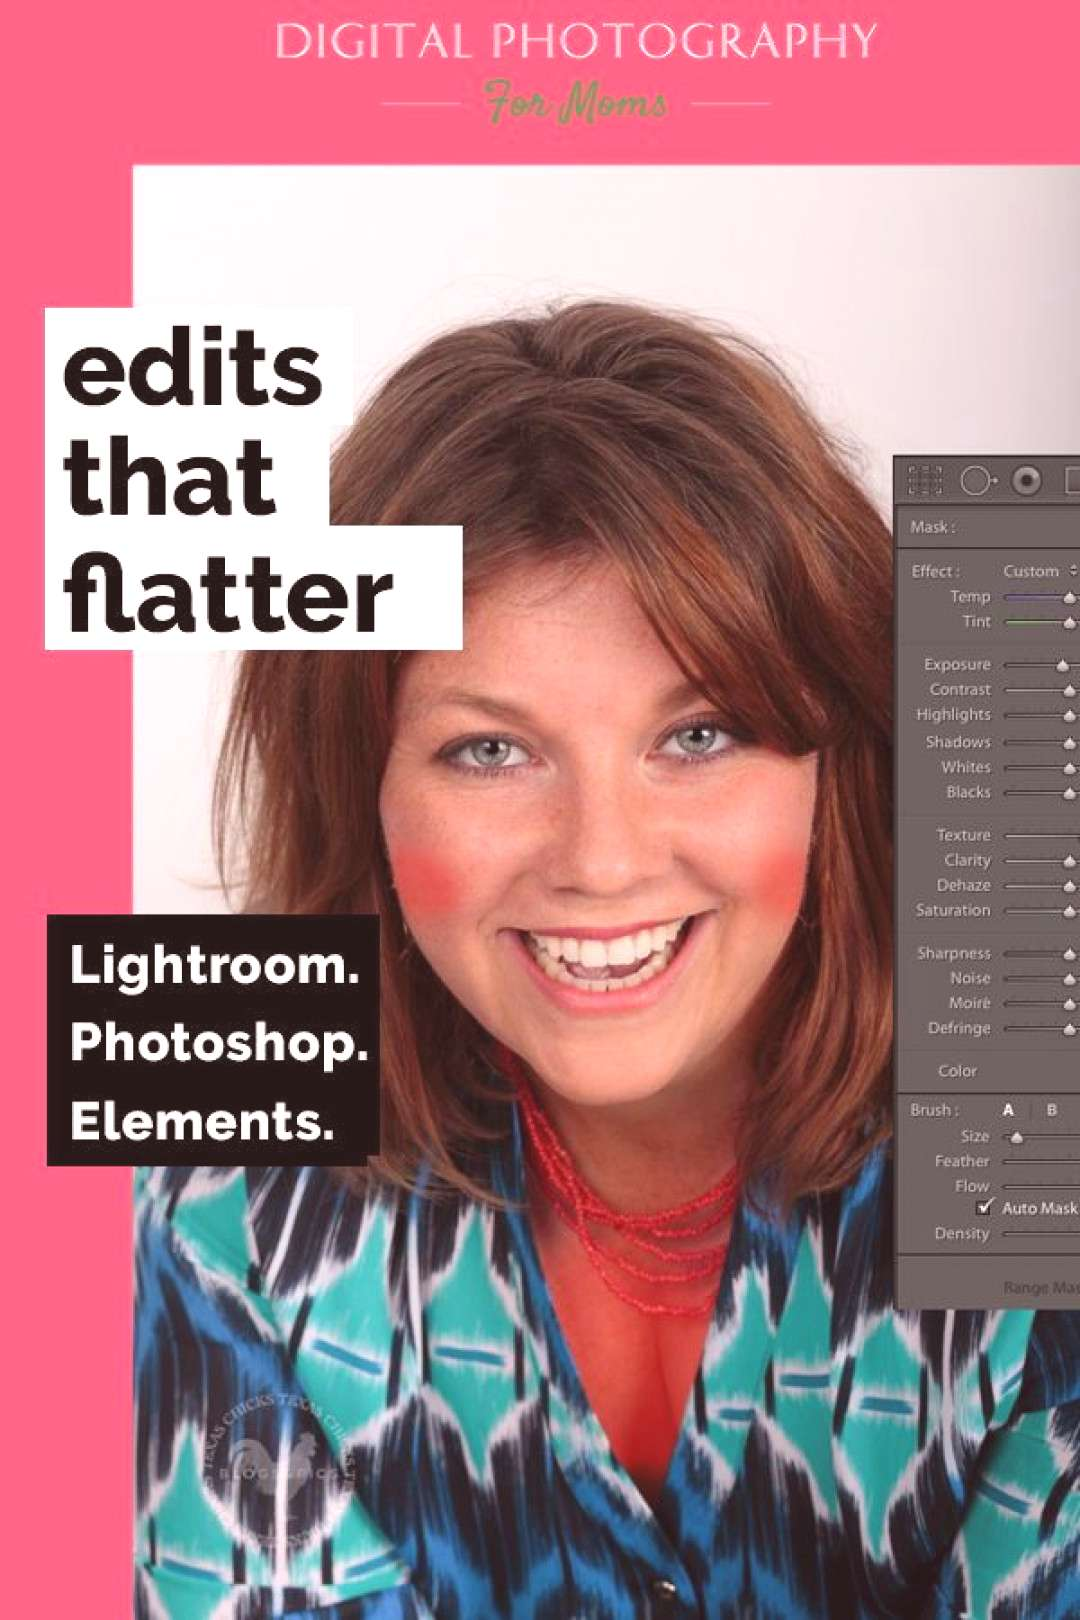 Tips for Flattering Headshot Poses Go beyond skin softening and eye brightening when you edit heads